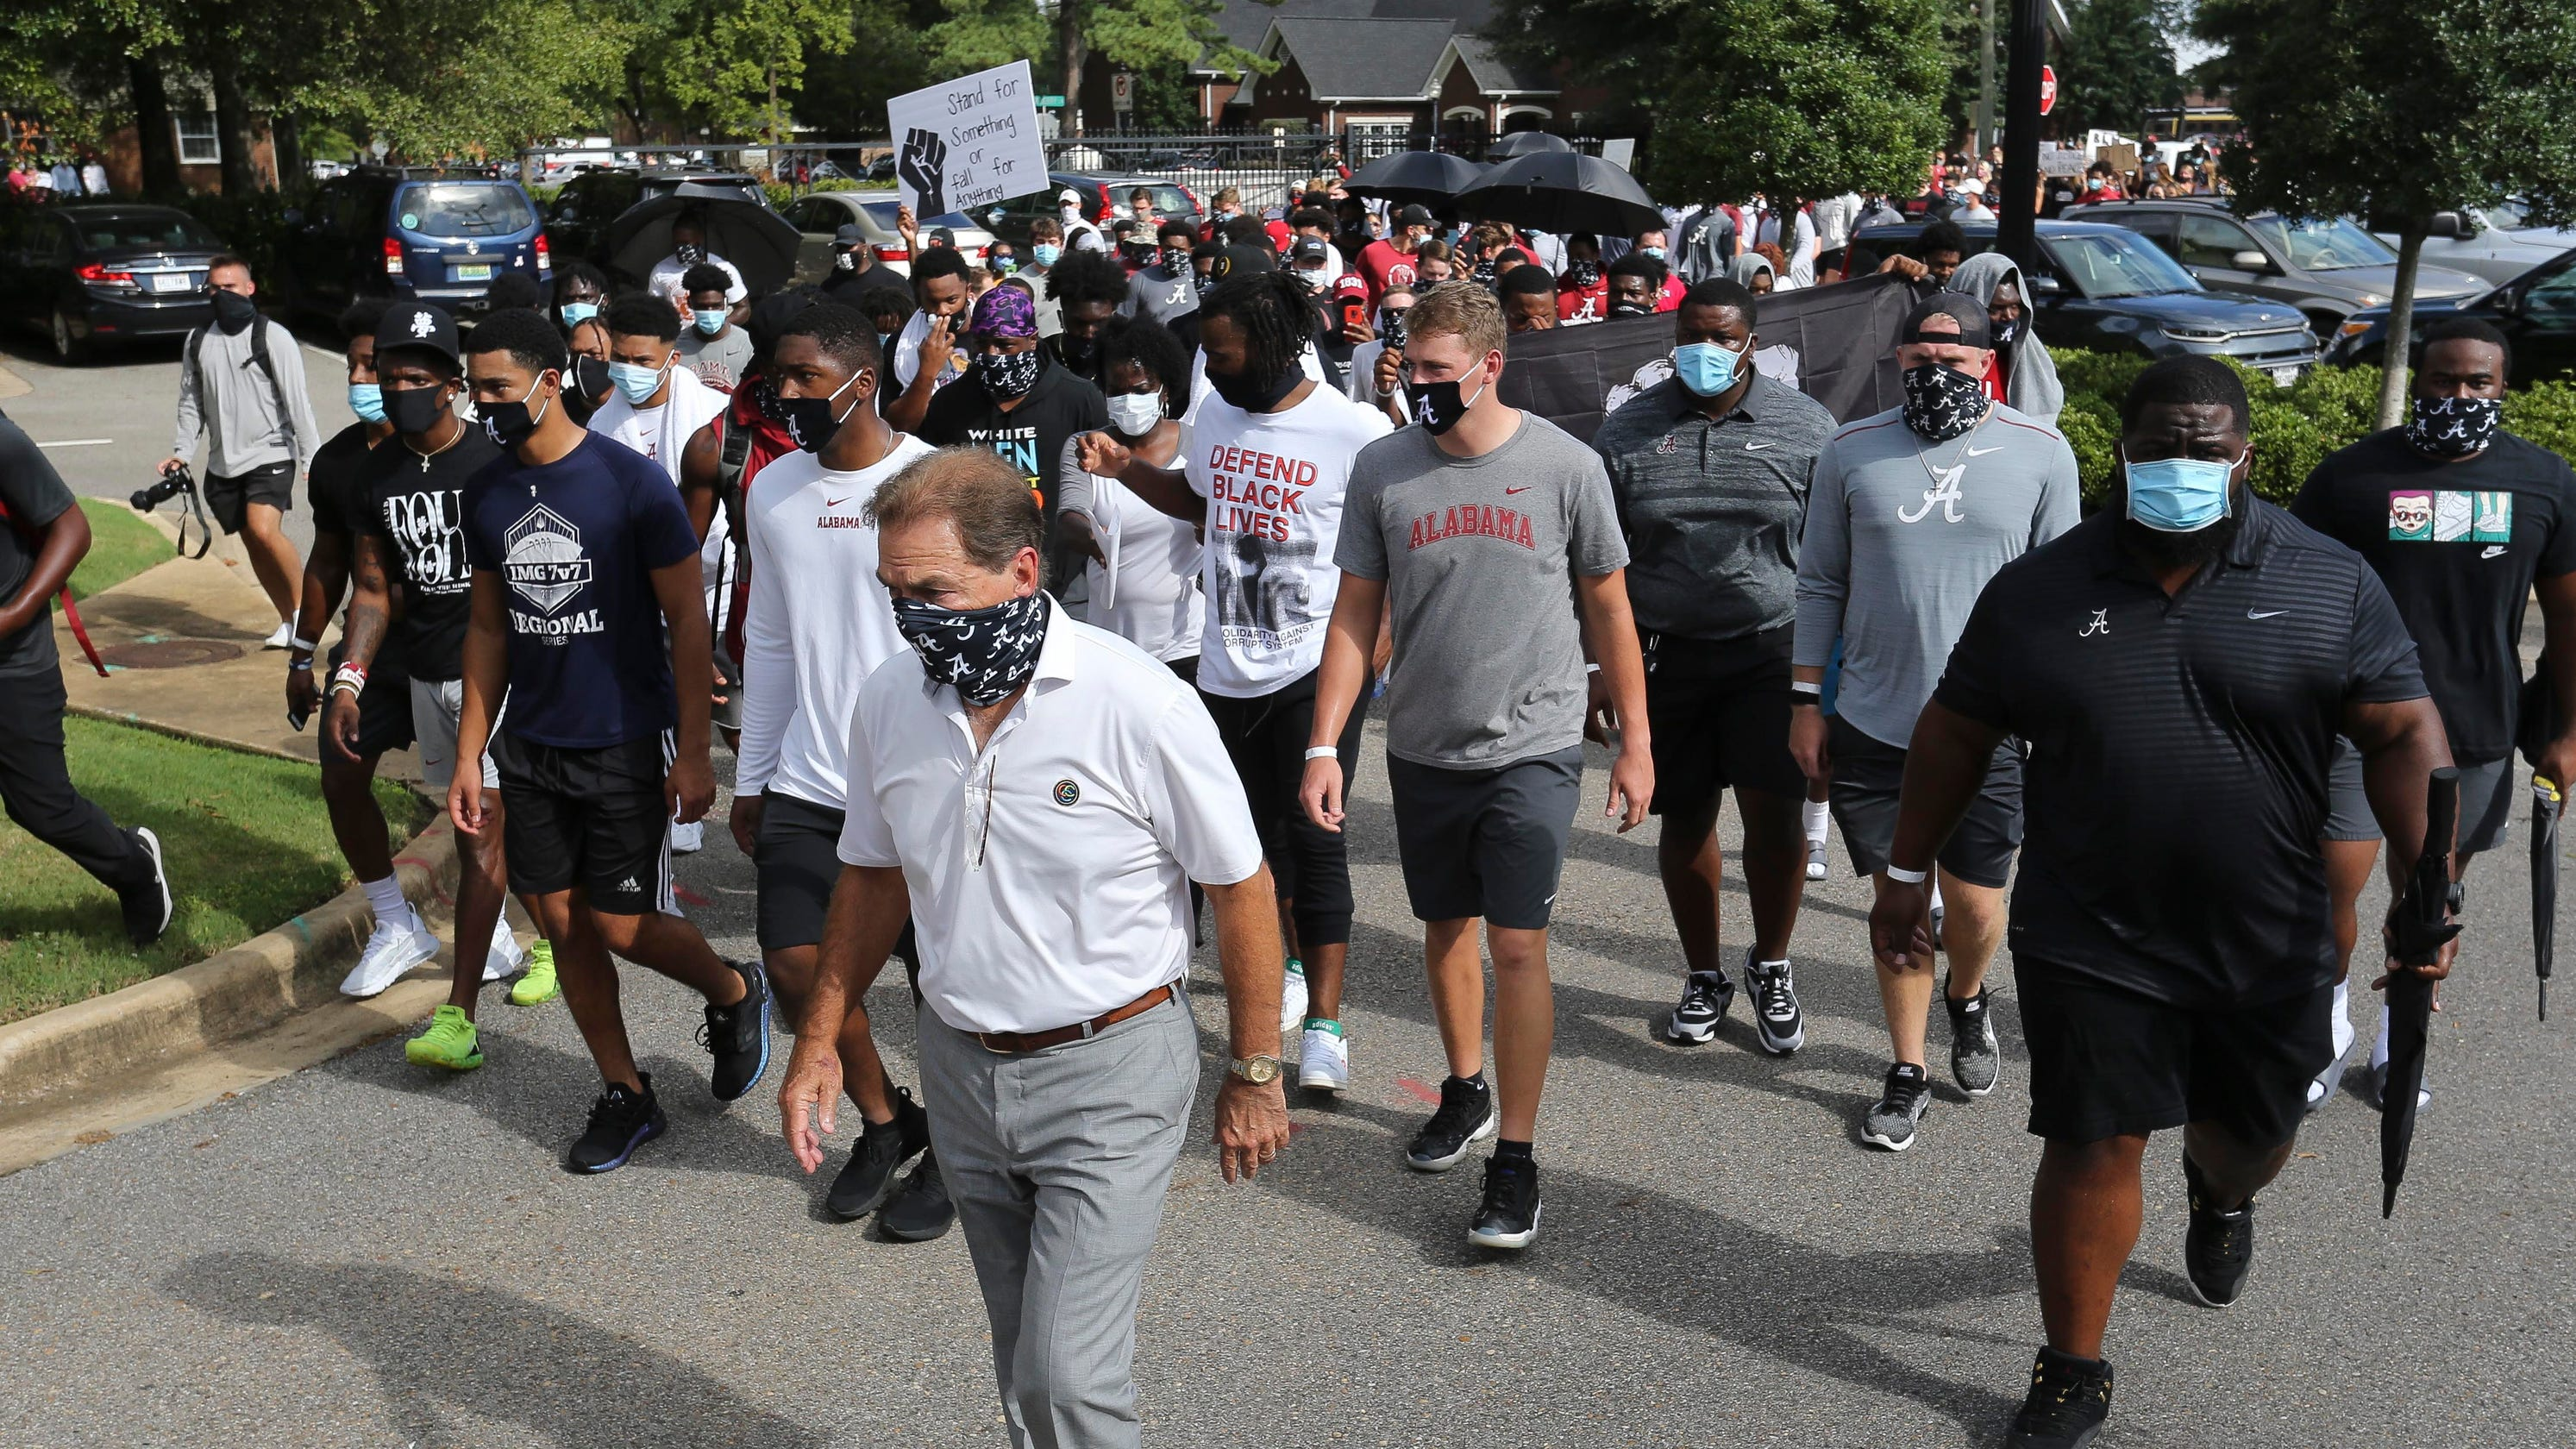 Nick Saban joins Alabama players and coaches in protest march